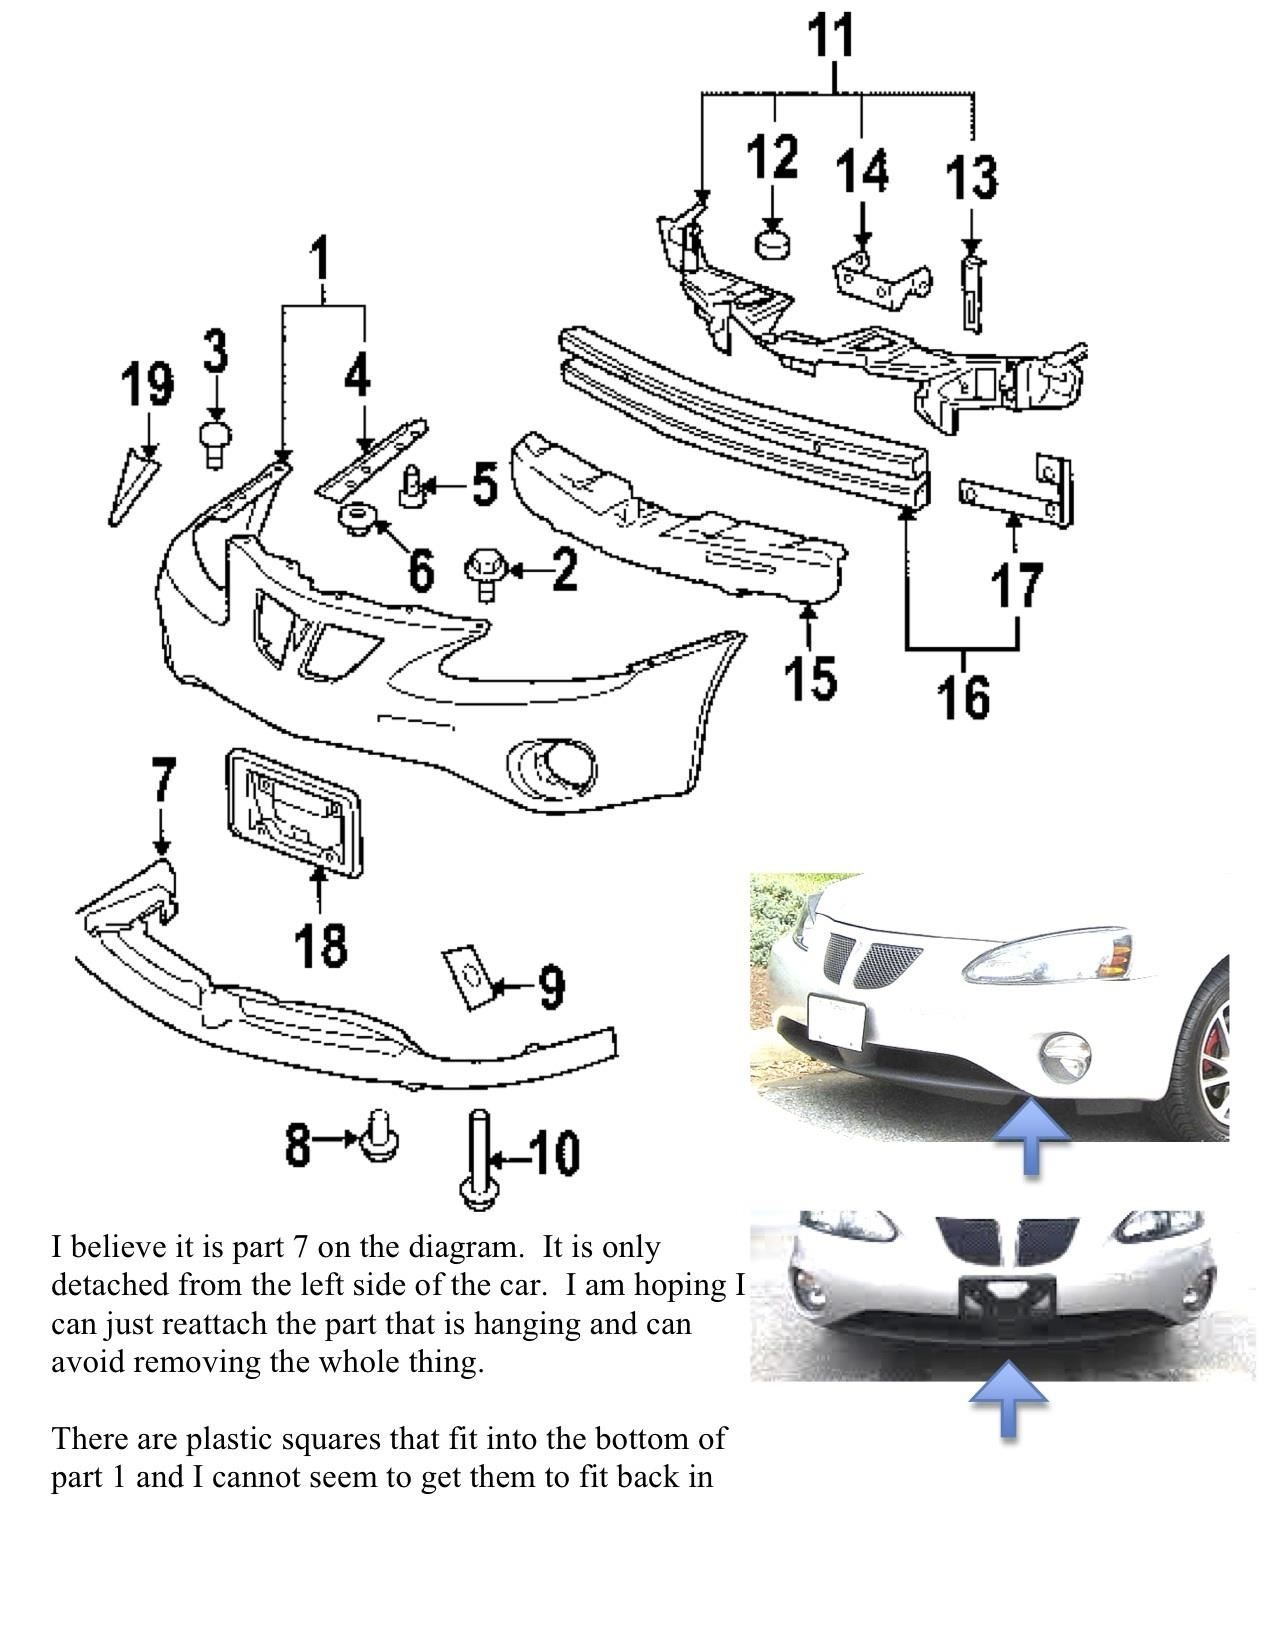 Please Tell Me Attach Front And Back Bumper Valance 06 Grand Prix 0155367 on Dodge Caravan Diagram